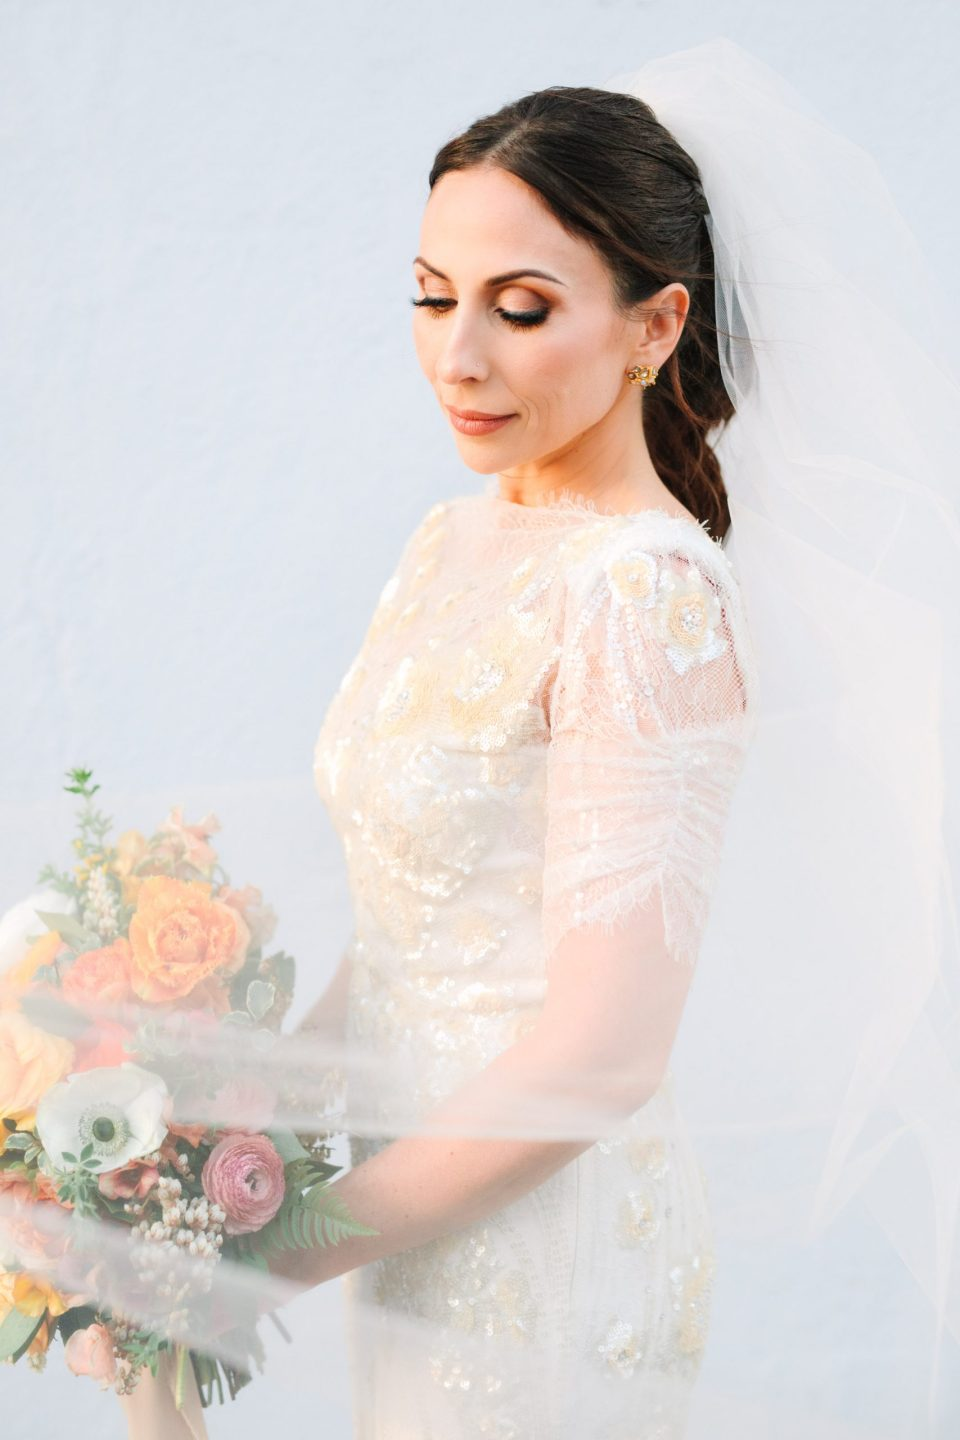 Bridal portrait with makeup by James Charles www.marycostaweddings.com